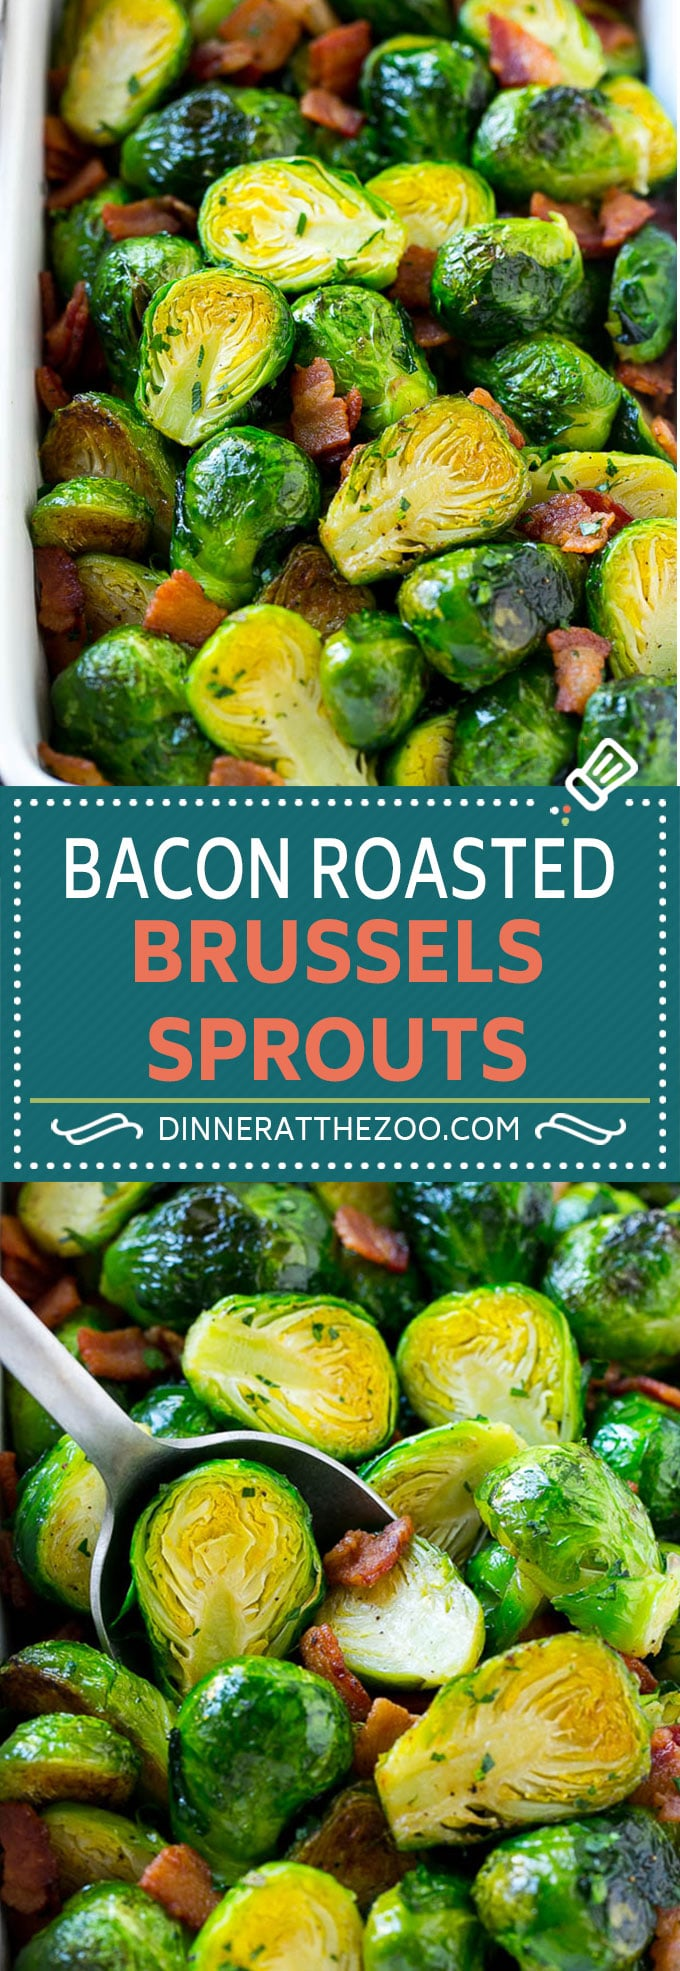 Bacon Roasted Brussels Sprouts Recipe | Crispy Brussels Sprouts | Brussels Sprouts with Bacon | Roasted Brussels Sprouts #brusselssprouts #bacon #sidedish #glutenfree #keto #dinner #dinneratthezoo #lowcarb